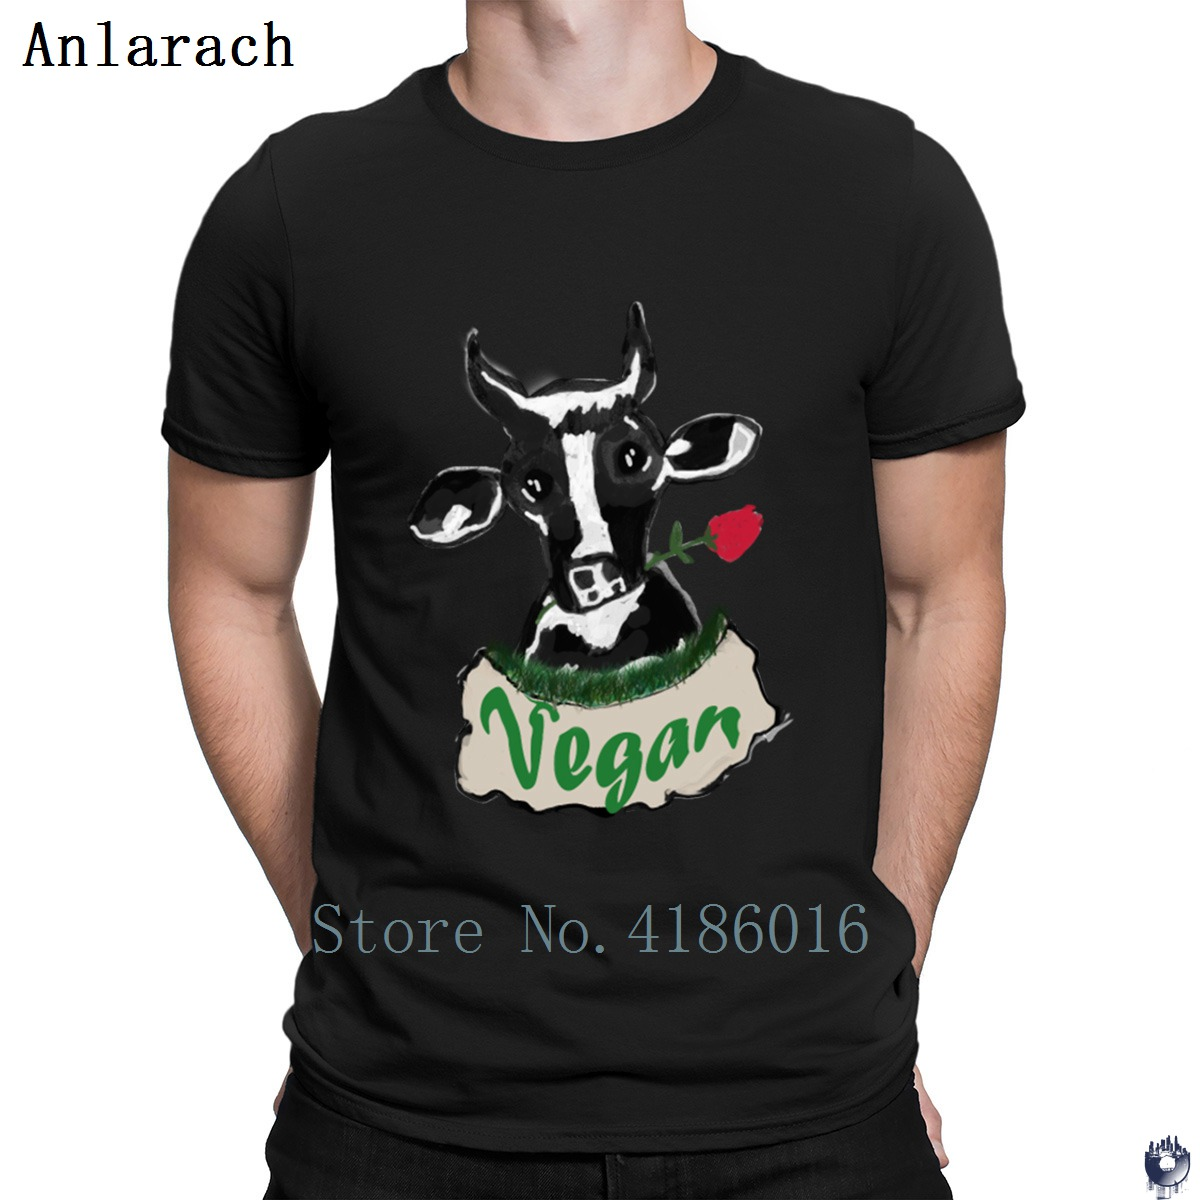 Vegan <font><b>Cow</b></font> <font><b>T</b></font> <font><b>Shirt</b></font> Tee <font><b>Shirt</b></font> Crazy O-Neck Designer Novelty Funny Casual Basic Solid Summer <font><b>Shirt</b></font> image